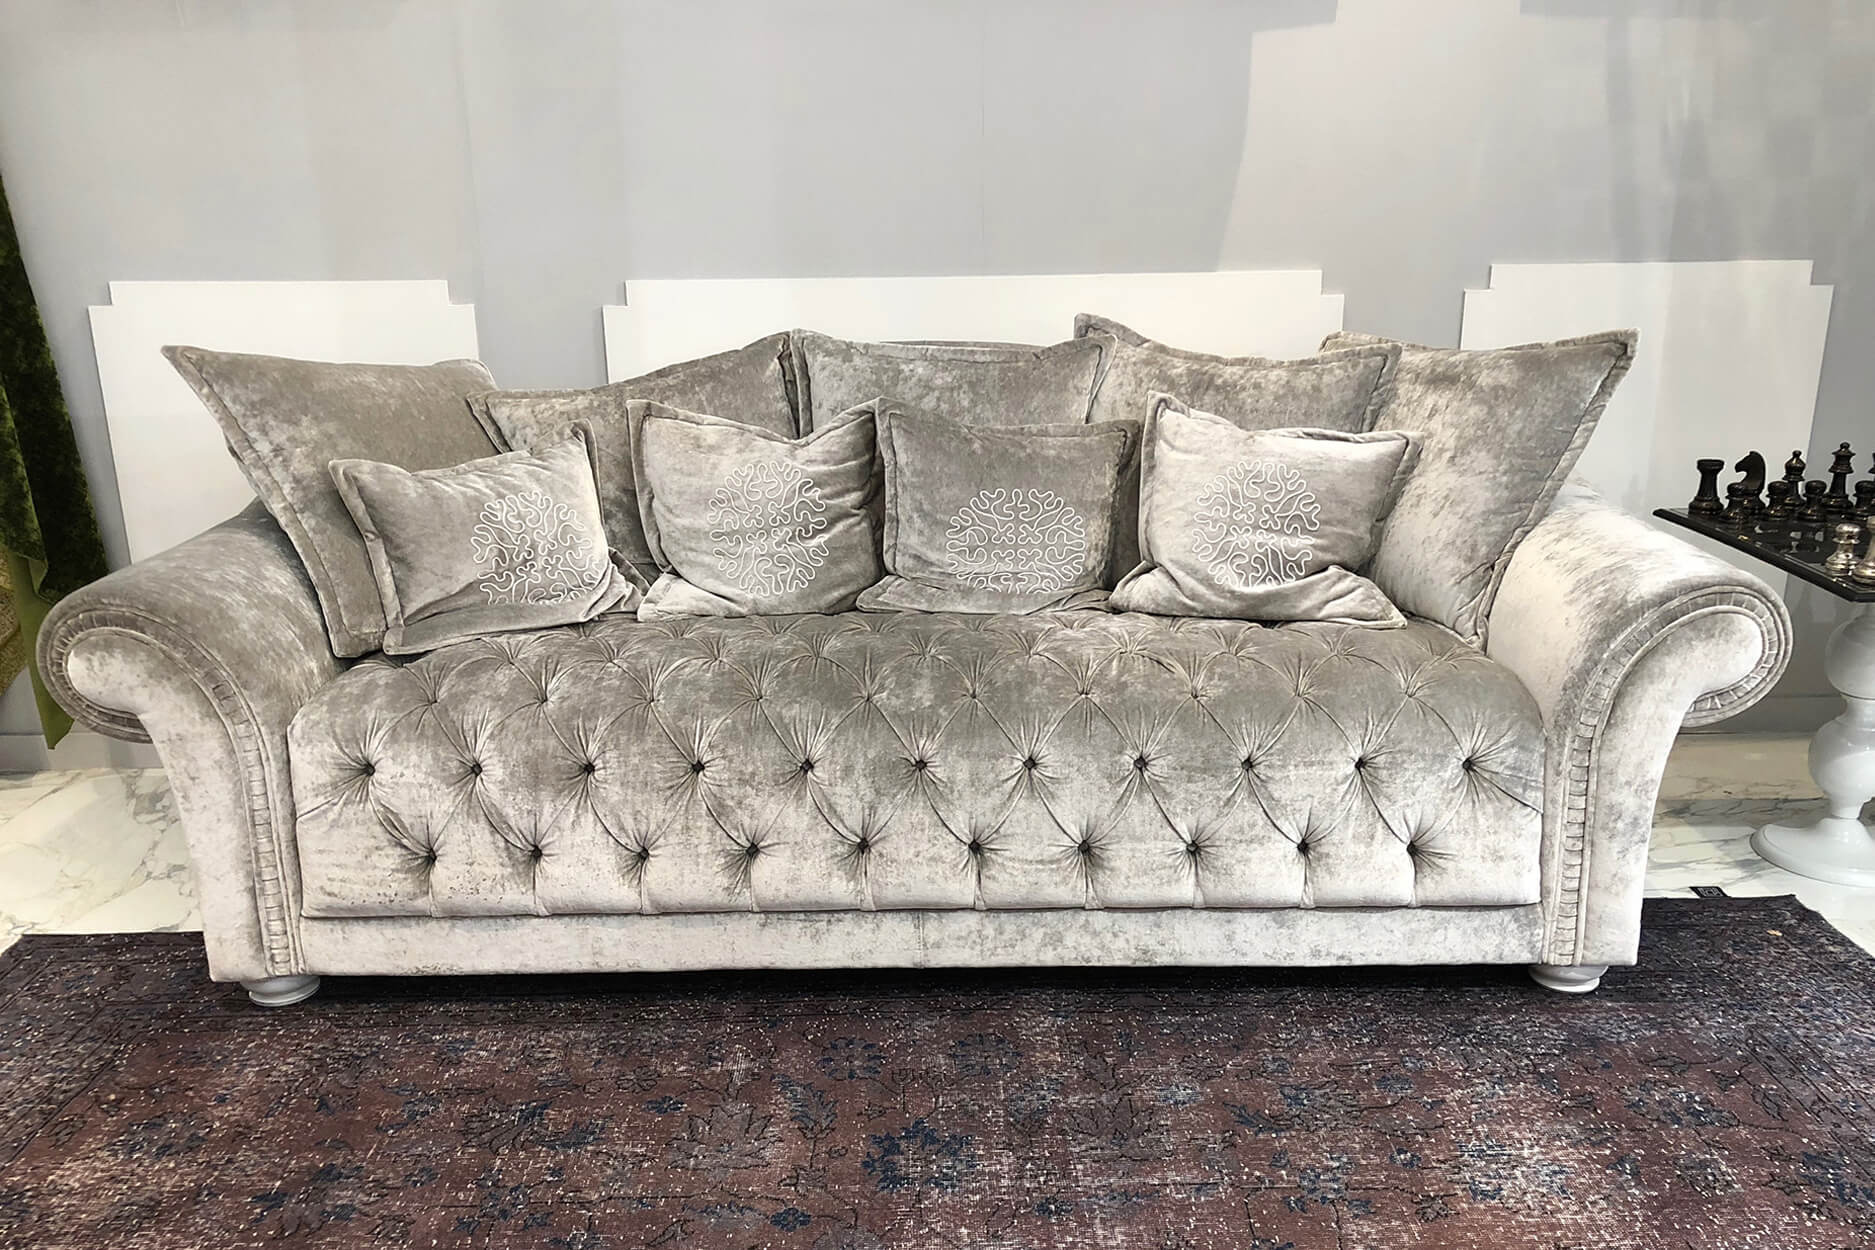 All Those Excellent Features And Benefits Of Luxury Sofas In Sydney